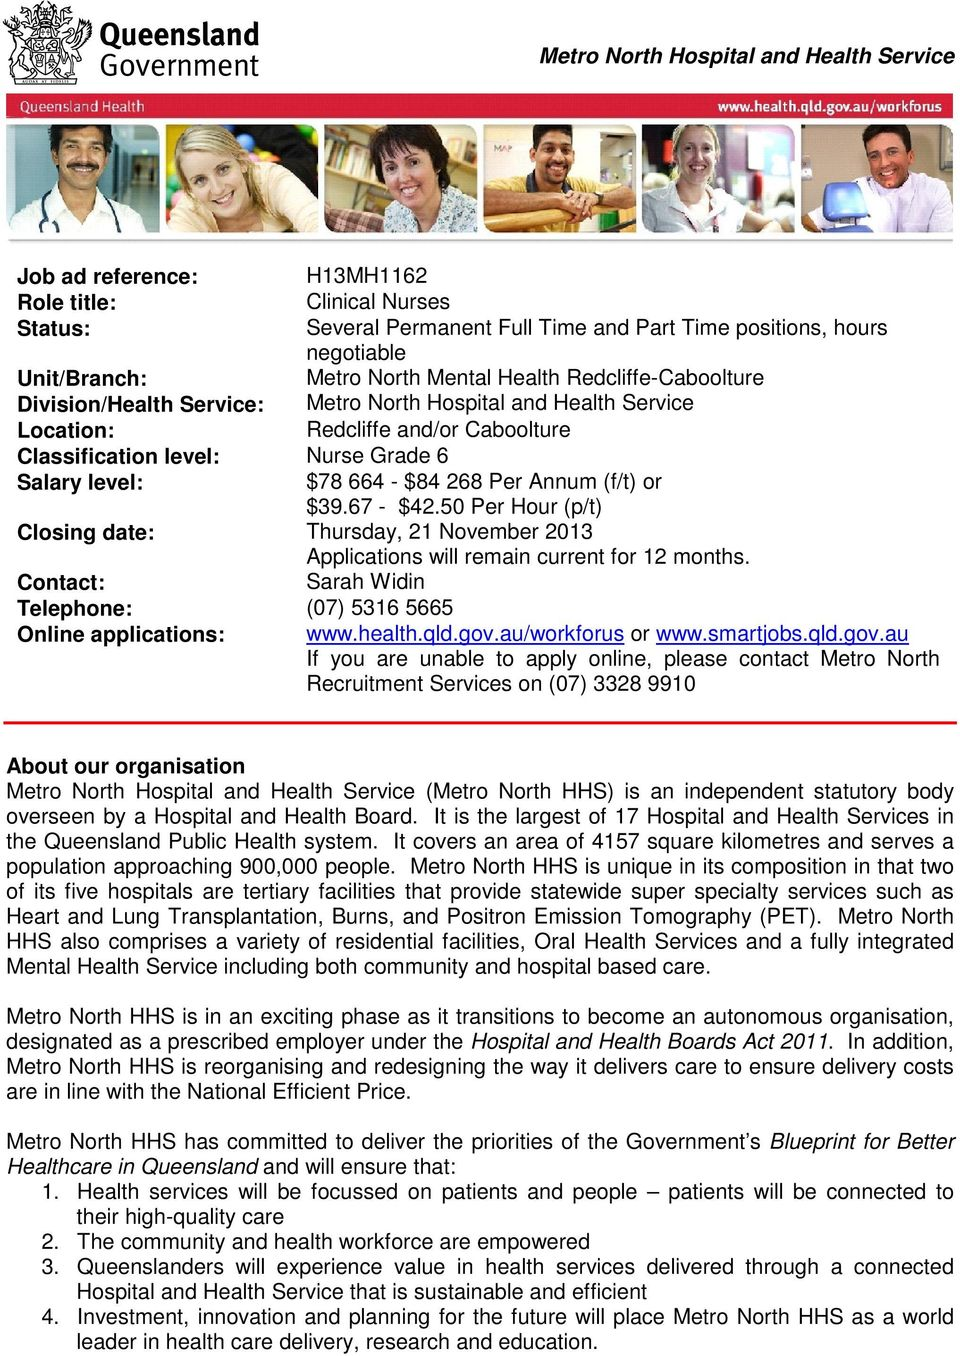 $84 268 Per Annum (f/t) or $39.67 - $42.50 Per Hour (p/t) Closing date: Thursday, 21 November 2013 Applications will remain current for 12 months.